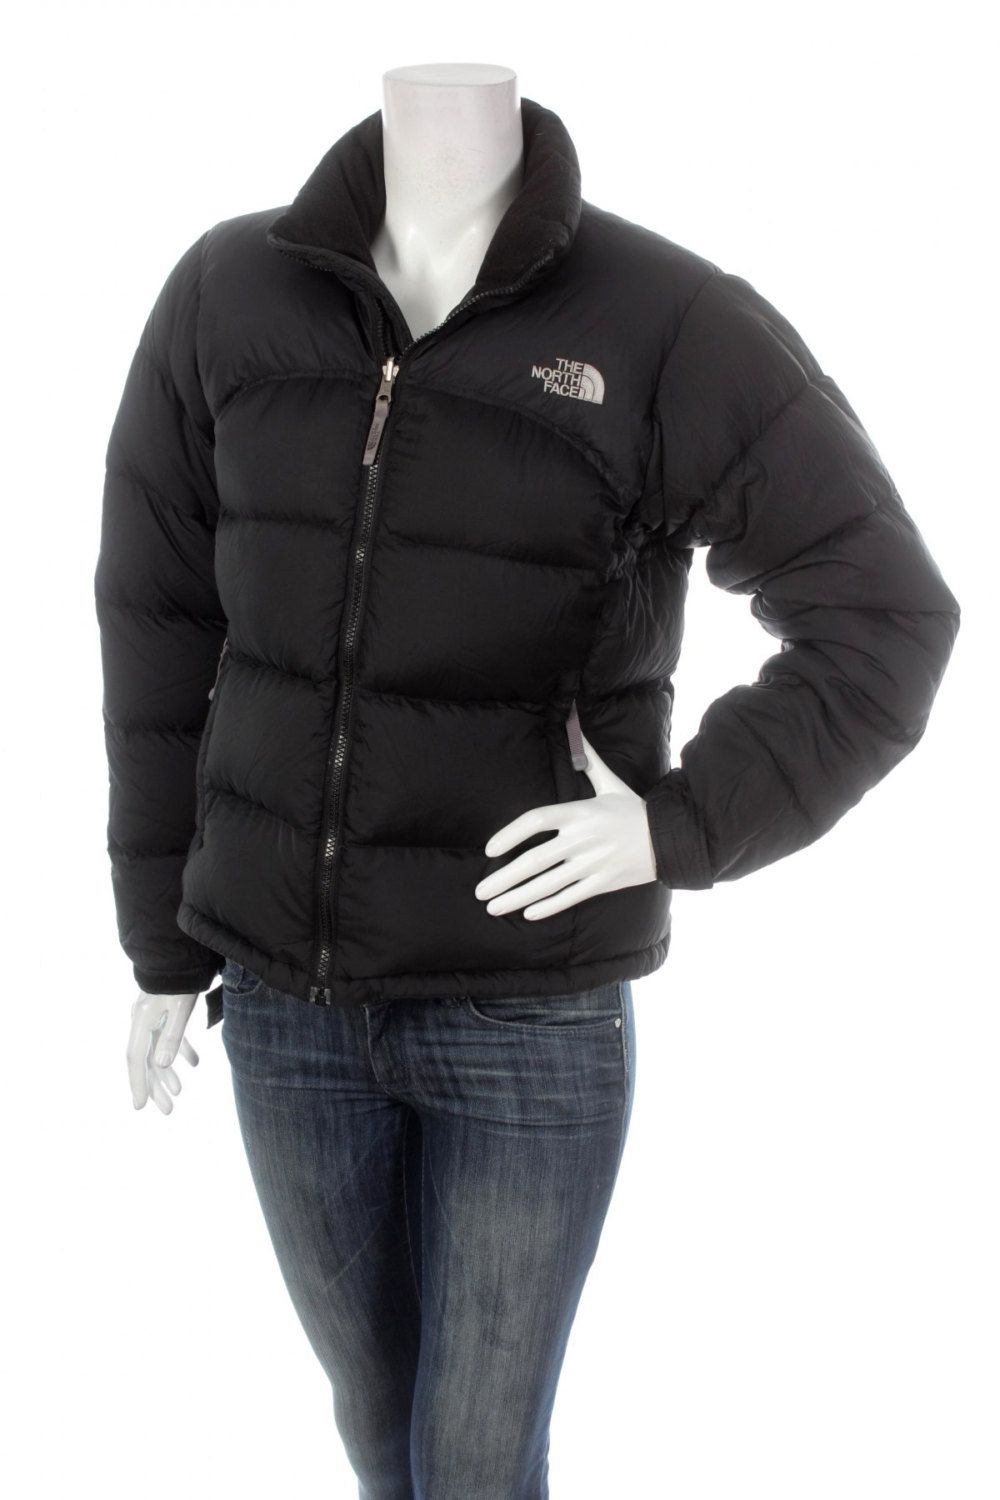 The North Face Women S 700 Down Fill Nuptse Jacket Small Black By Vapeovintage North Face Jacket Mens North Face Jacket Womens North Face Jacket